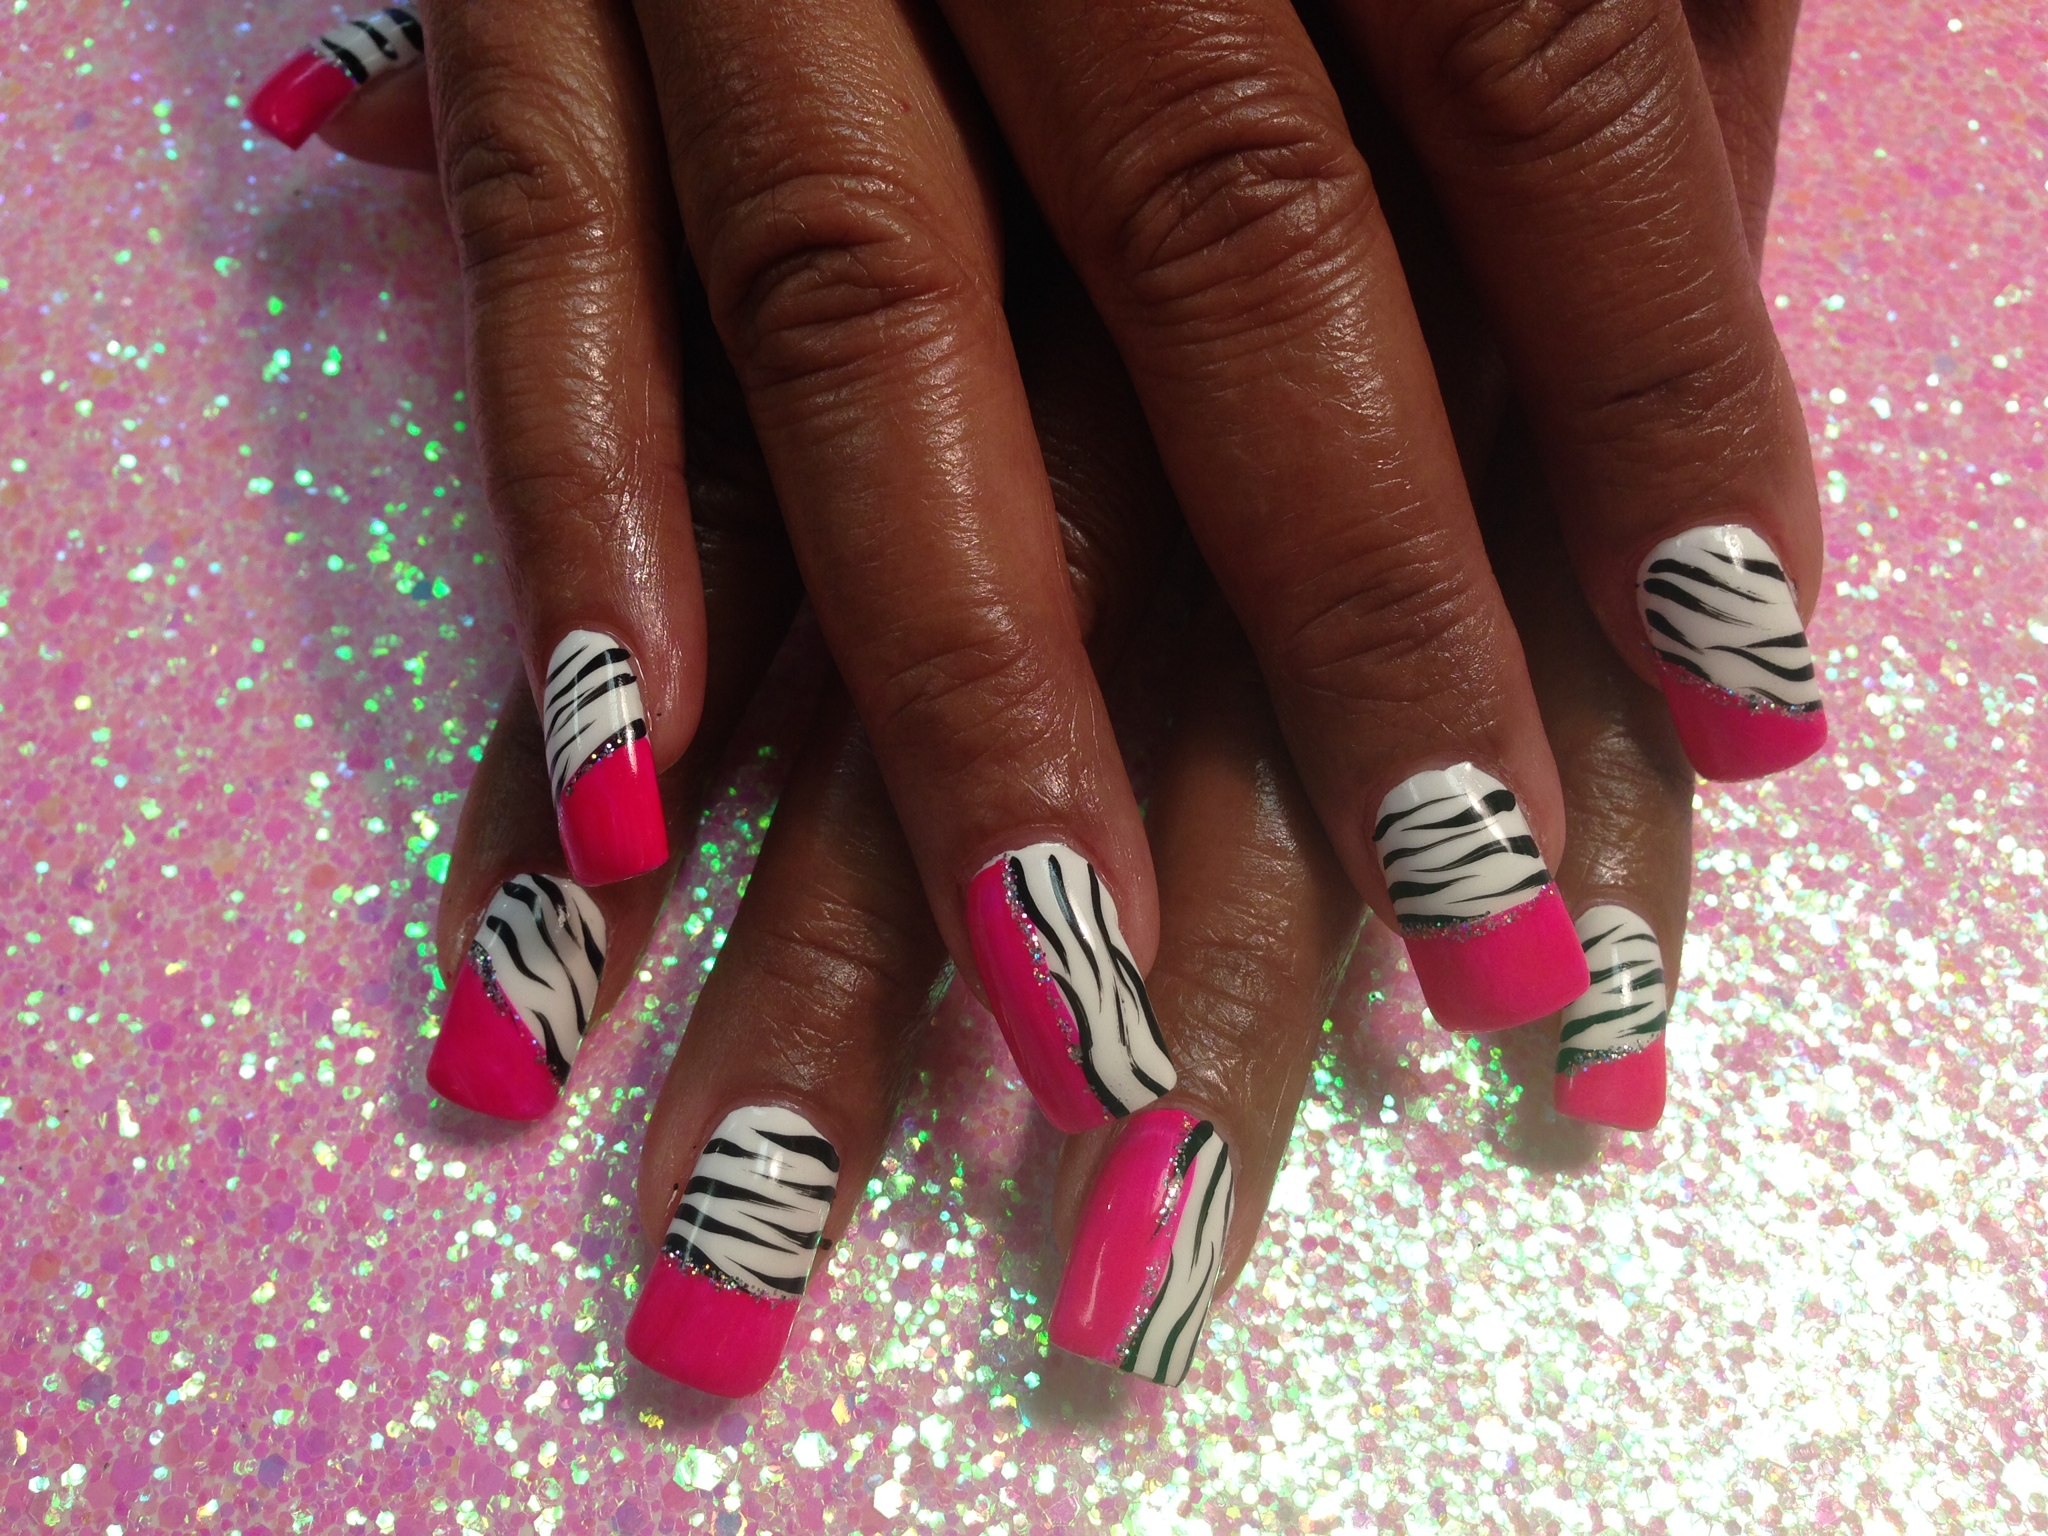 Pink White Tiger Nail Art Designs By Top Nails Clarksville Tn